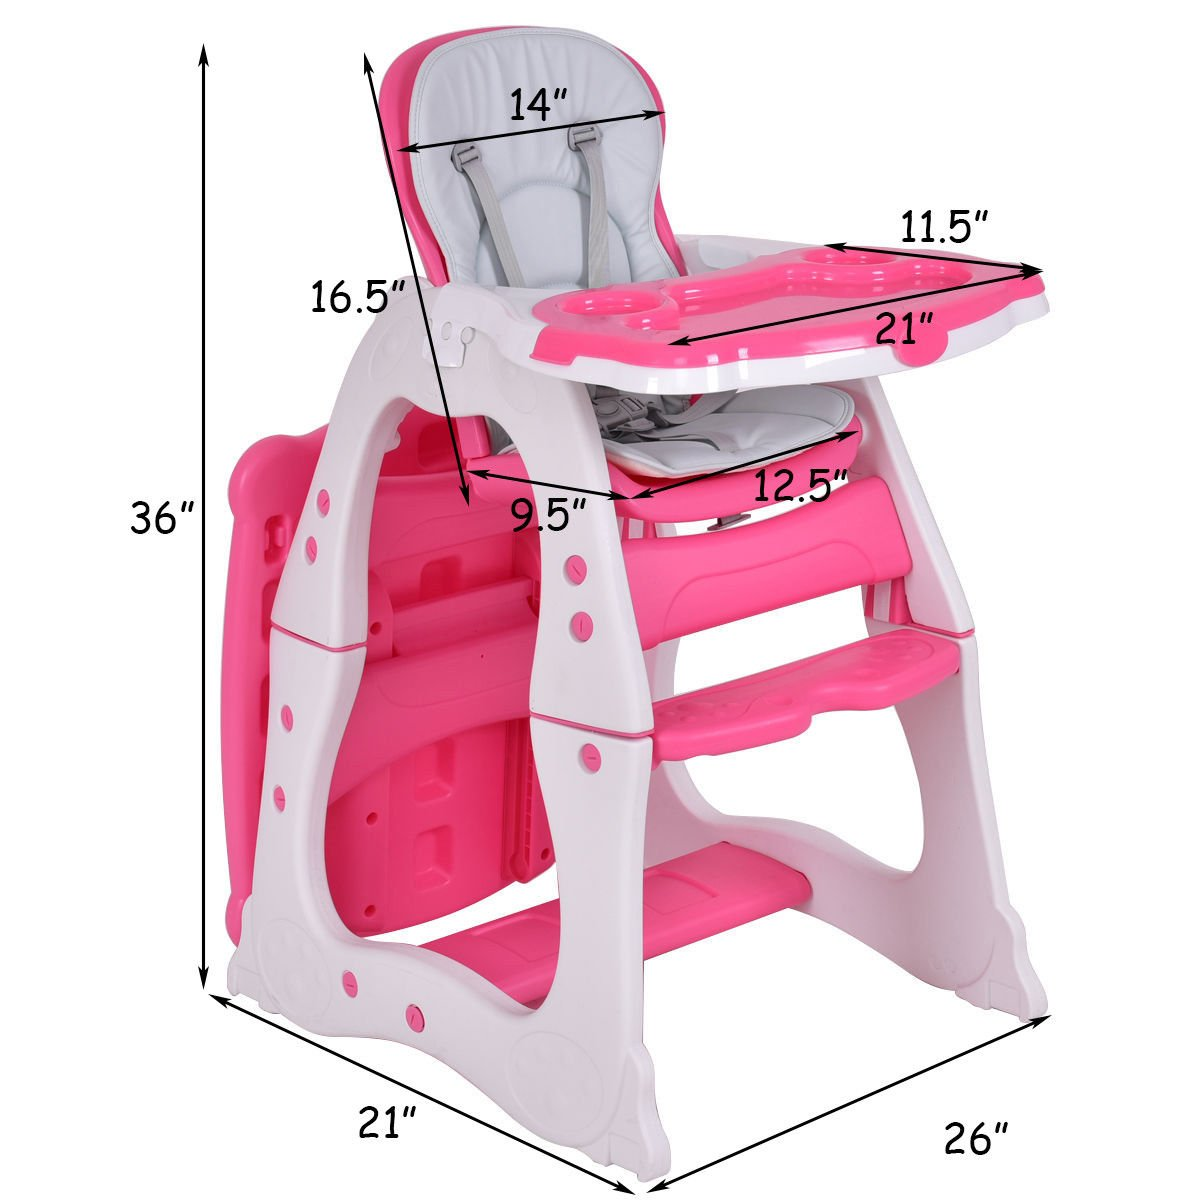 3 in 1 Baby High Chair high Caliber highborn Convertible Play Table Seat Booster Toddler Feeding Tray 3 Positions Available, Reclining, Adjustable seat. Hatchback Highball Suitable Age from 6 Months